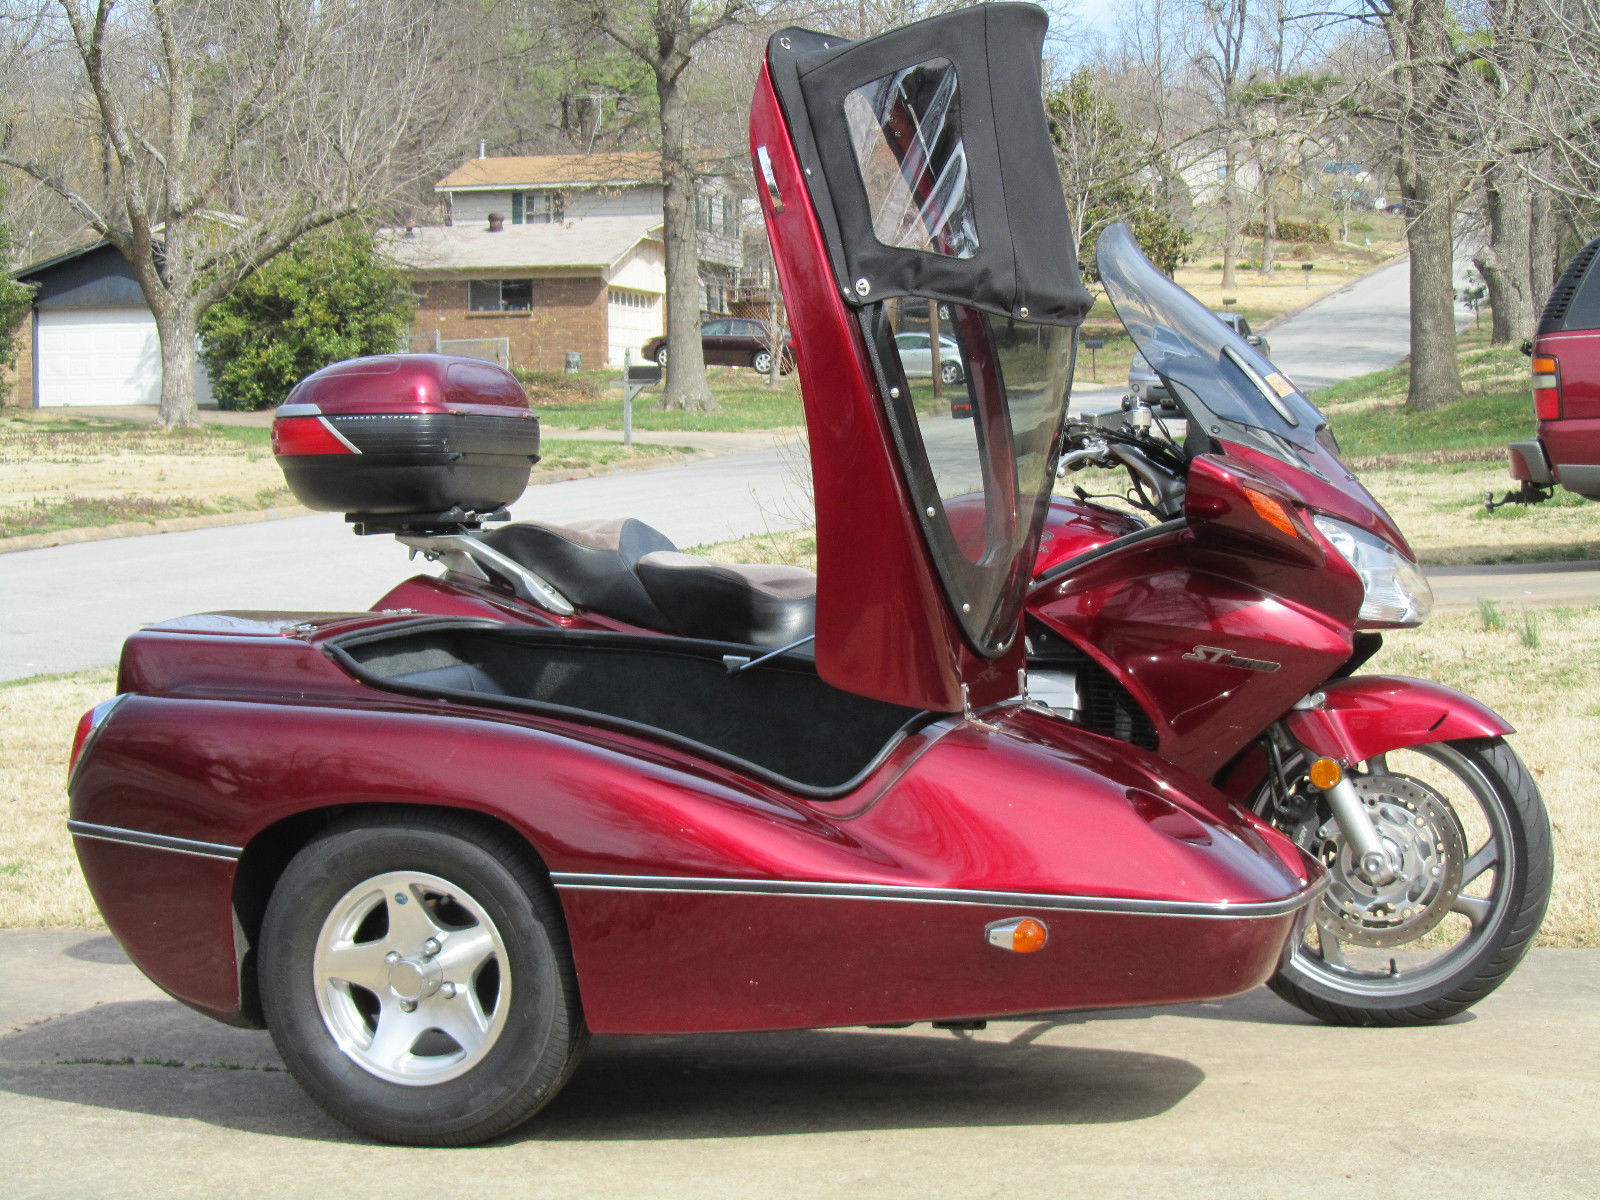 Honda St1300 Motorcycle With Hannigan Sidecar